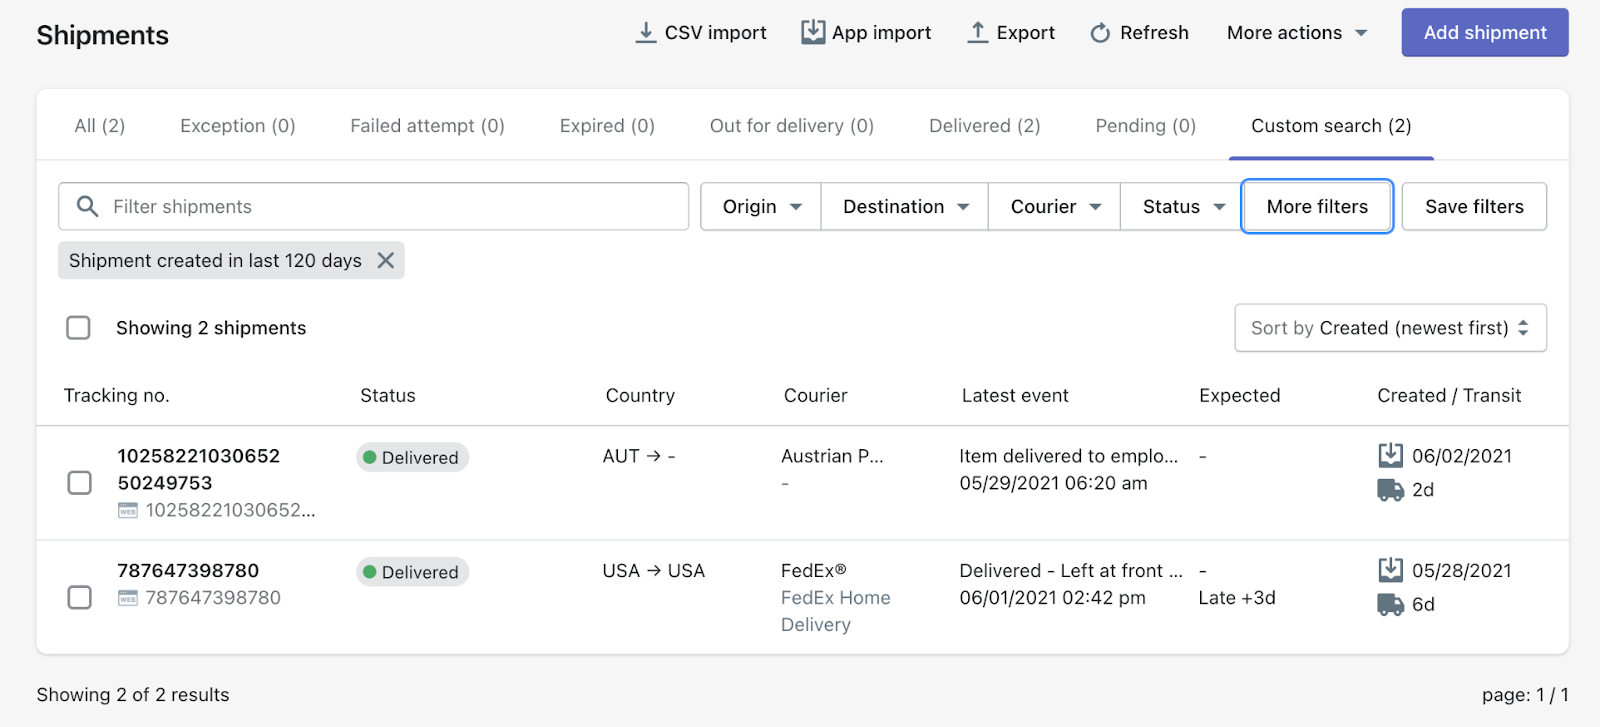 AfterShip New Features: Order & Pickup Date, Promised Delivery Date and More